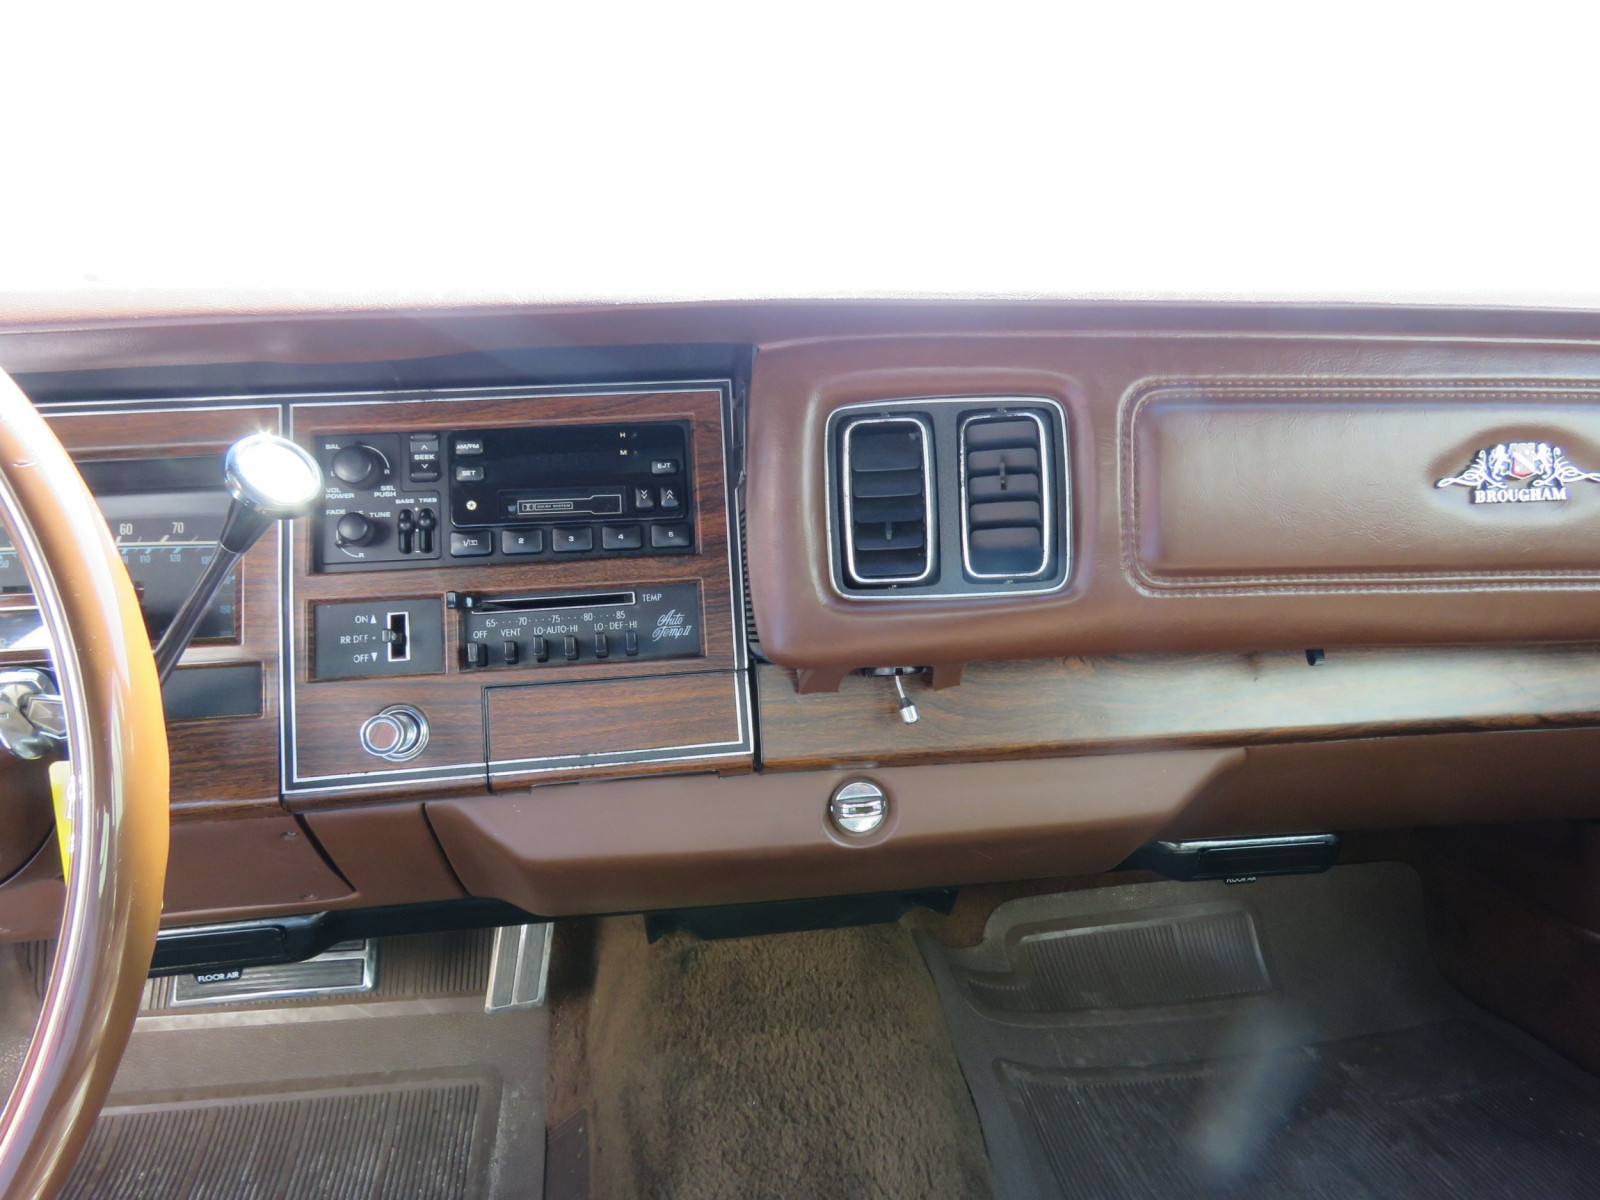 1977 Chrysler New Yorker Brougham with ST. Regis package - Image 18